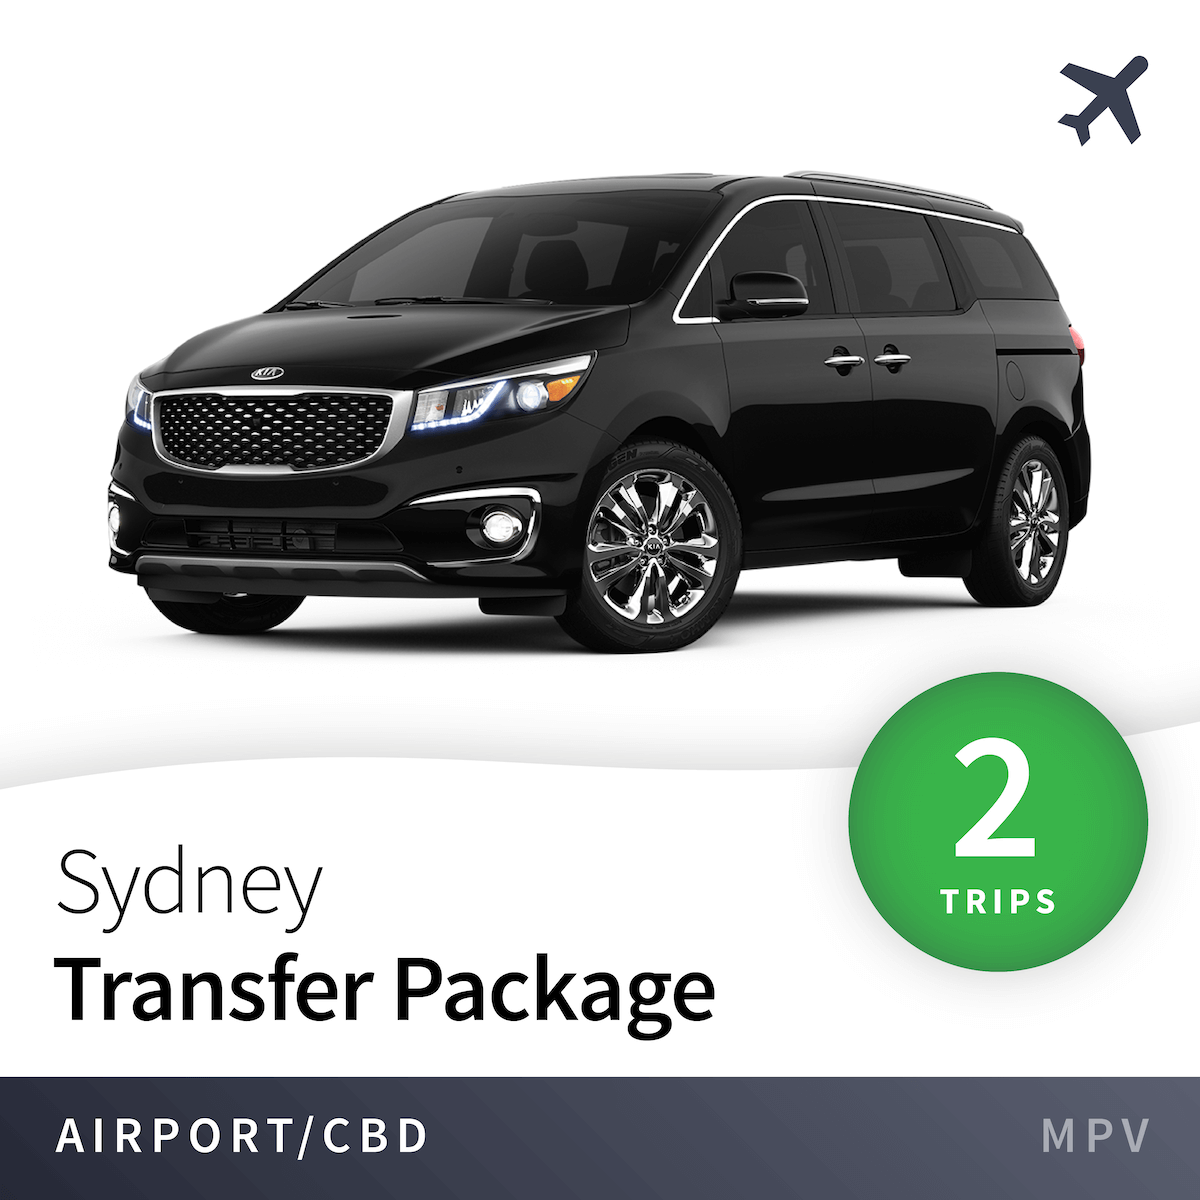 Sydney Airport Transfer Package - MPV (2 Trips) 3